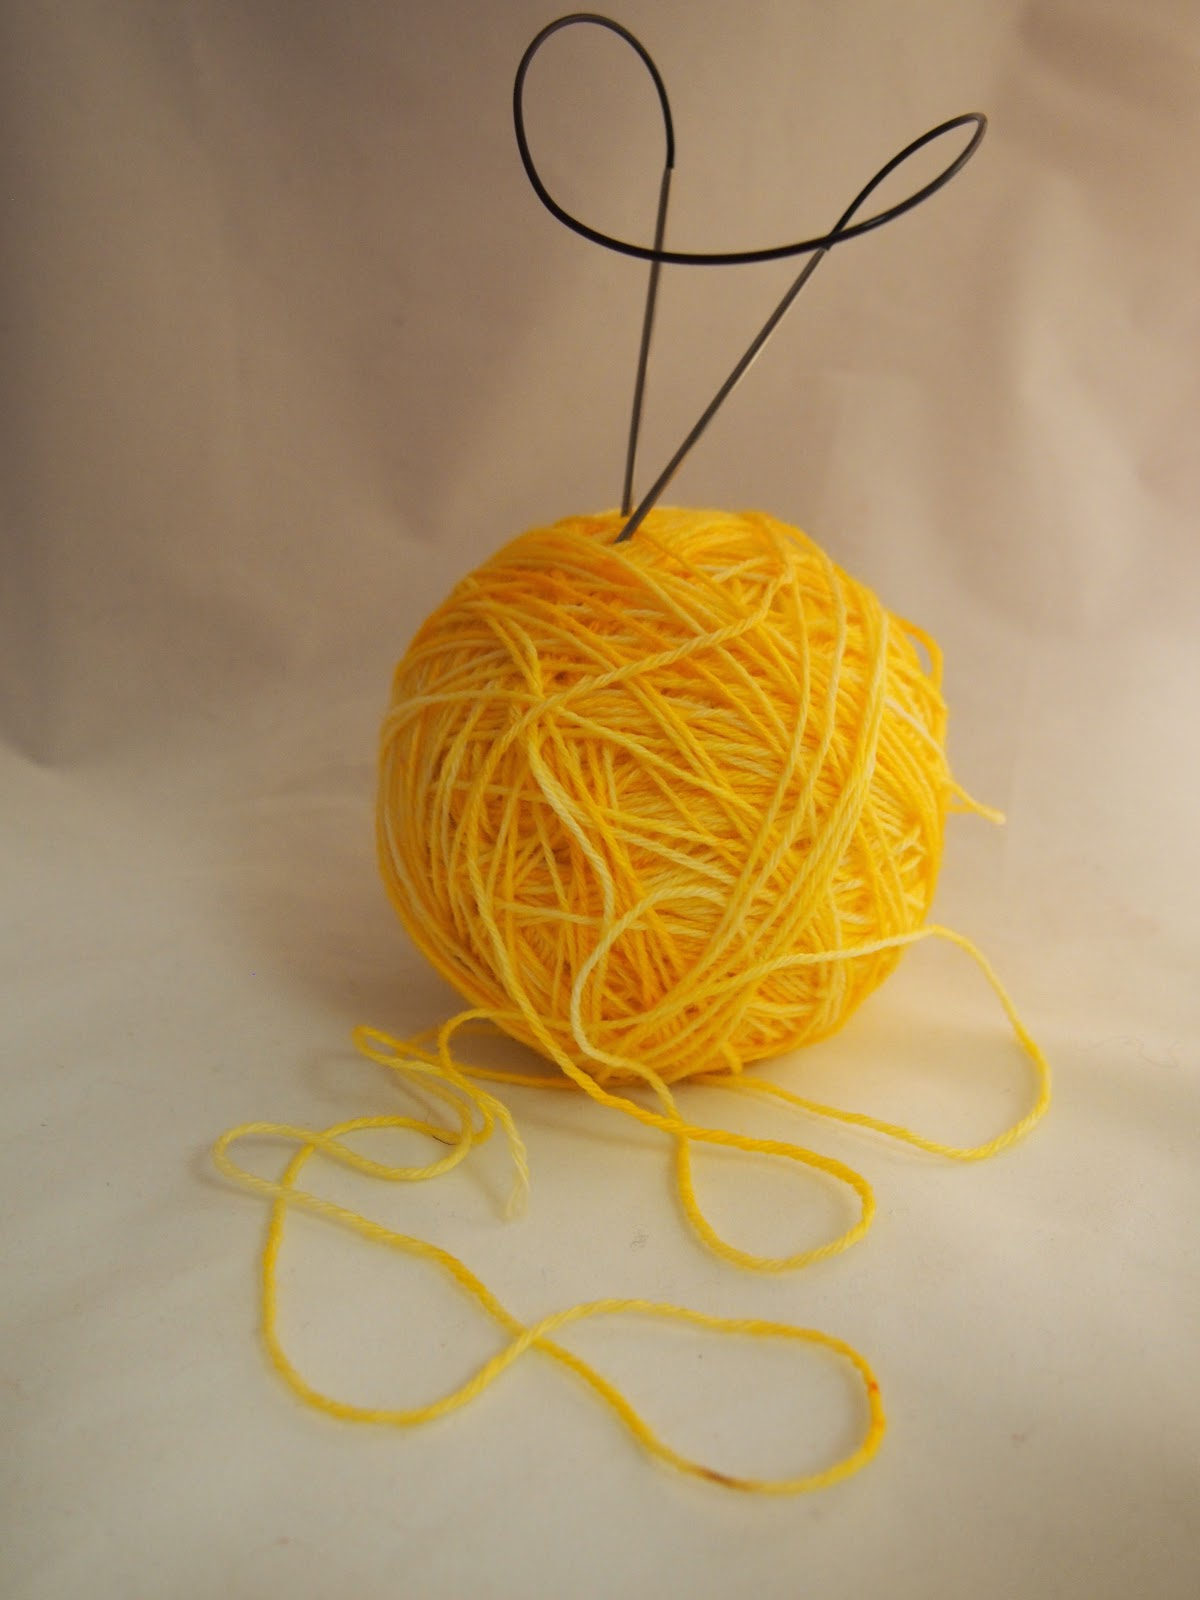 Sock yarn in a ball with circular needles